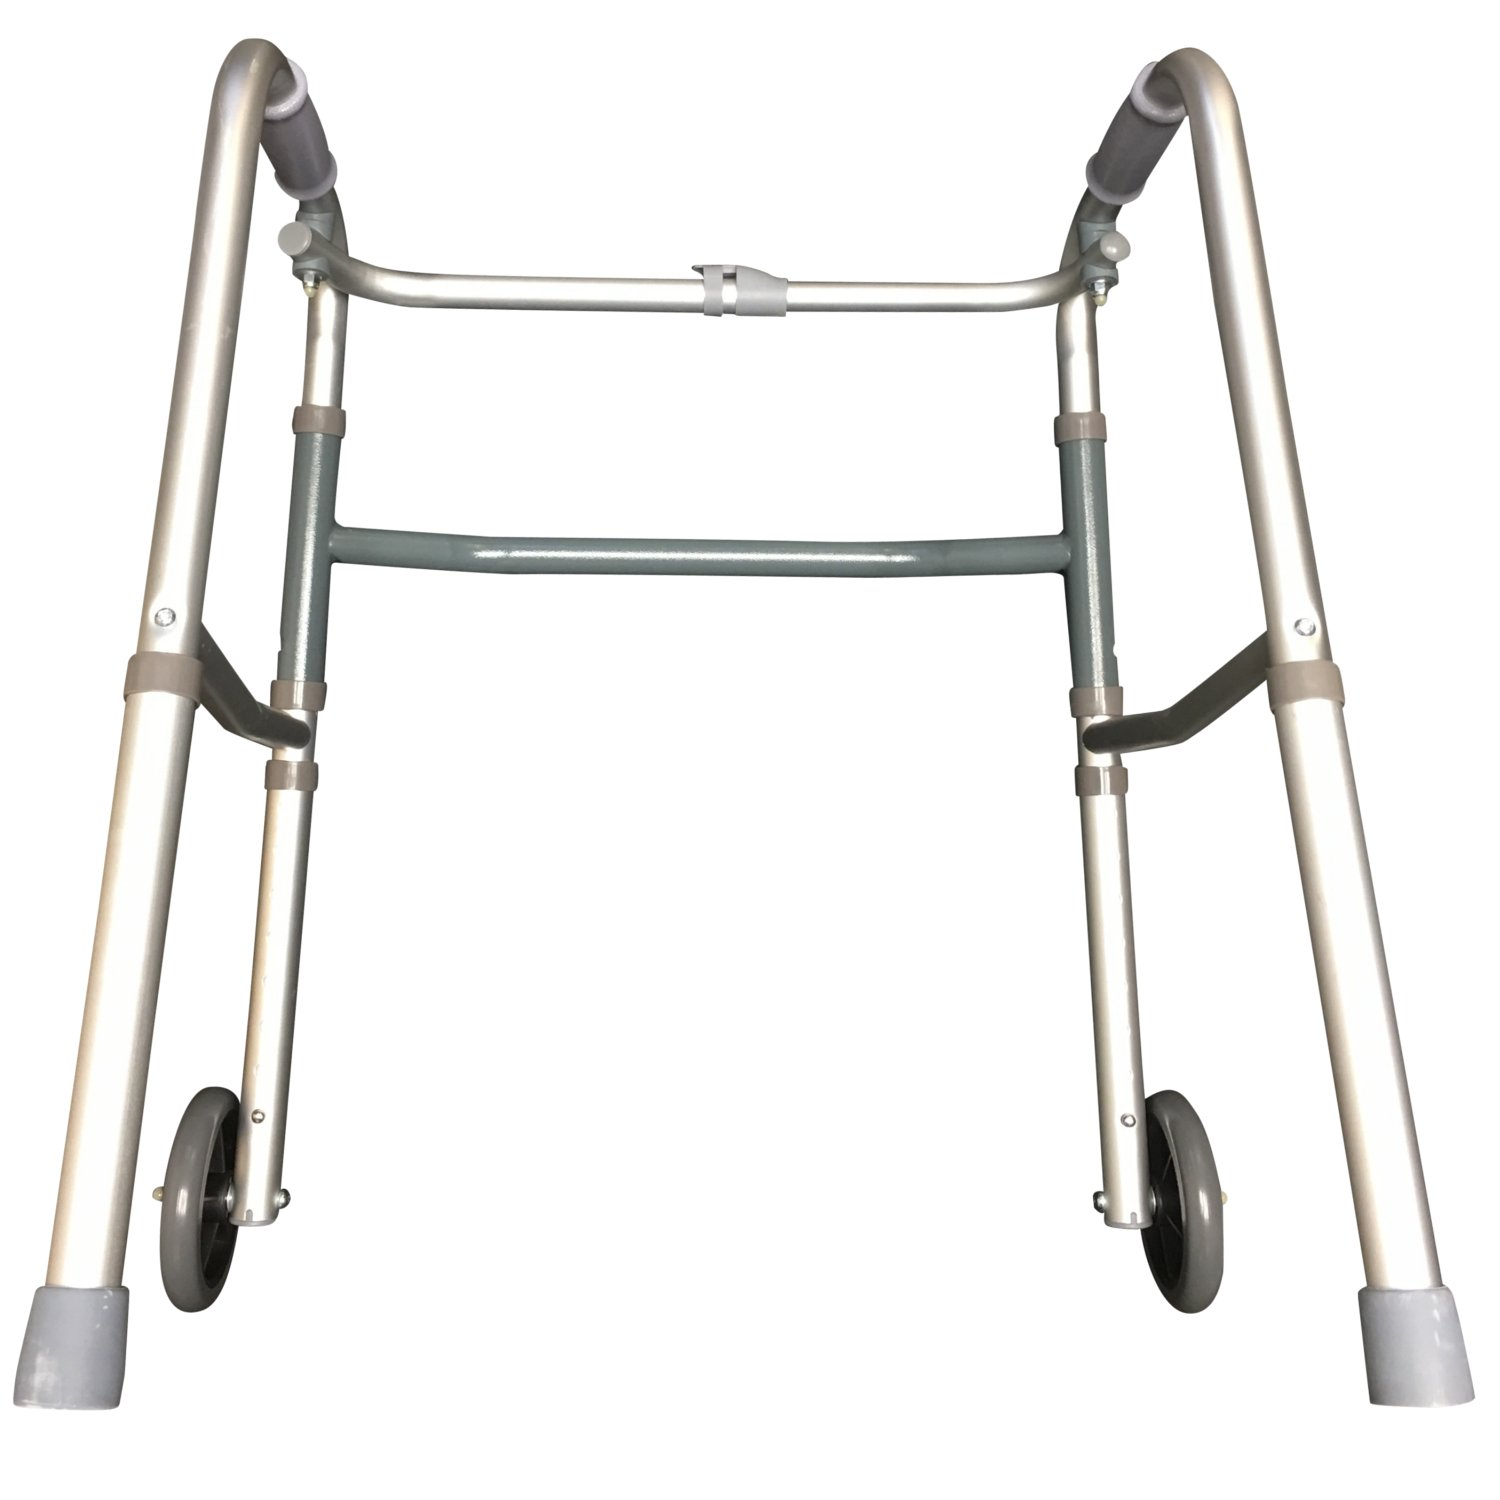 Pcp Adjustable Double Release Walker with 5 inches wheels, Grey, Junior Size by PCP